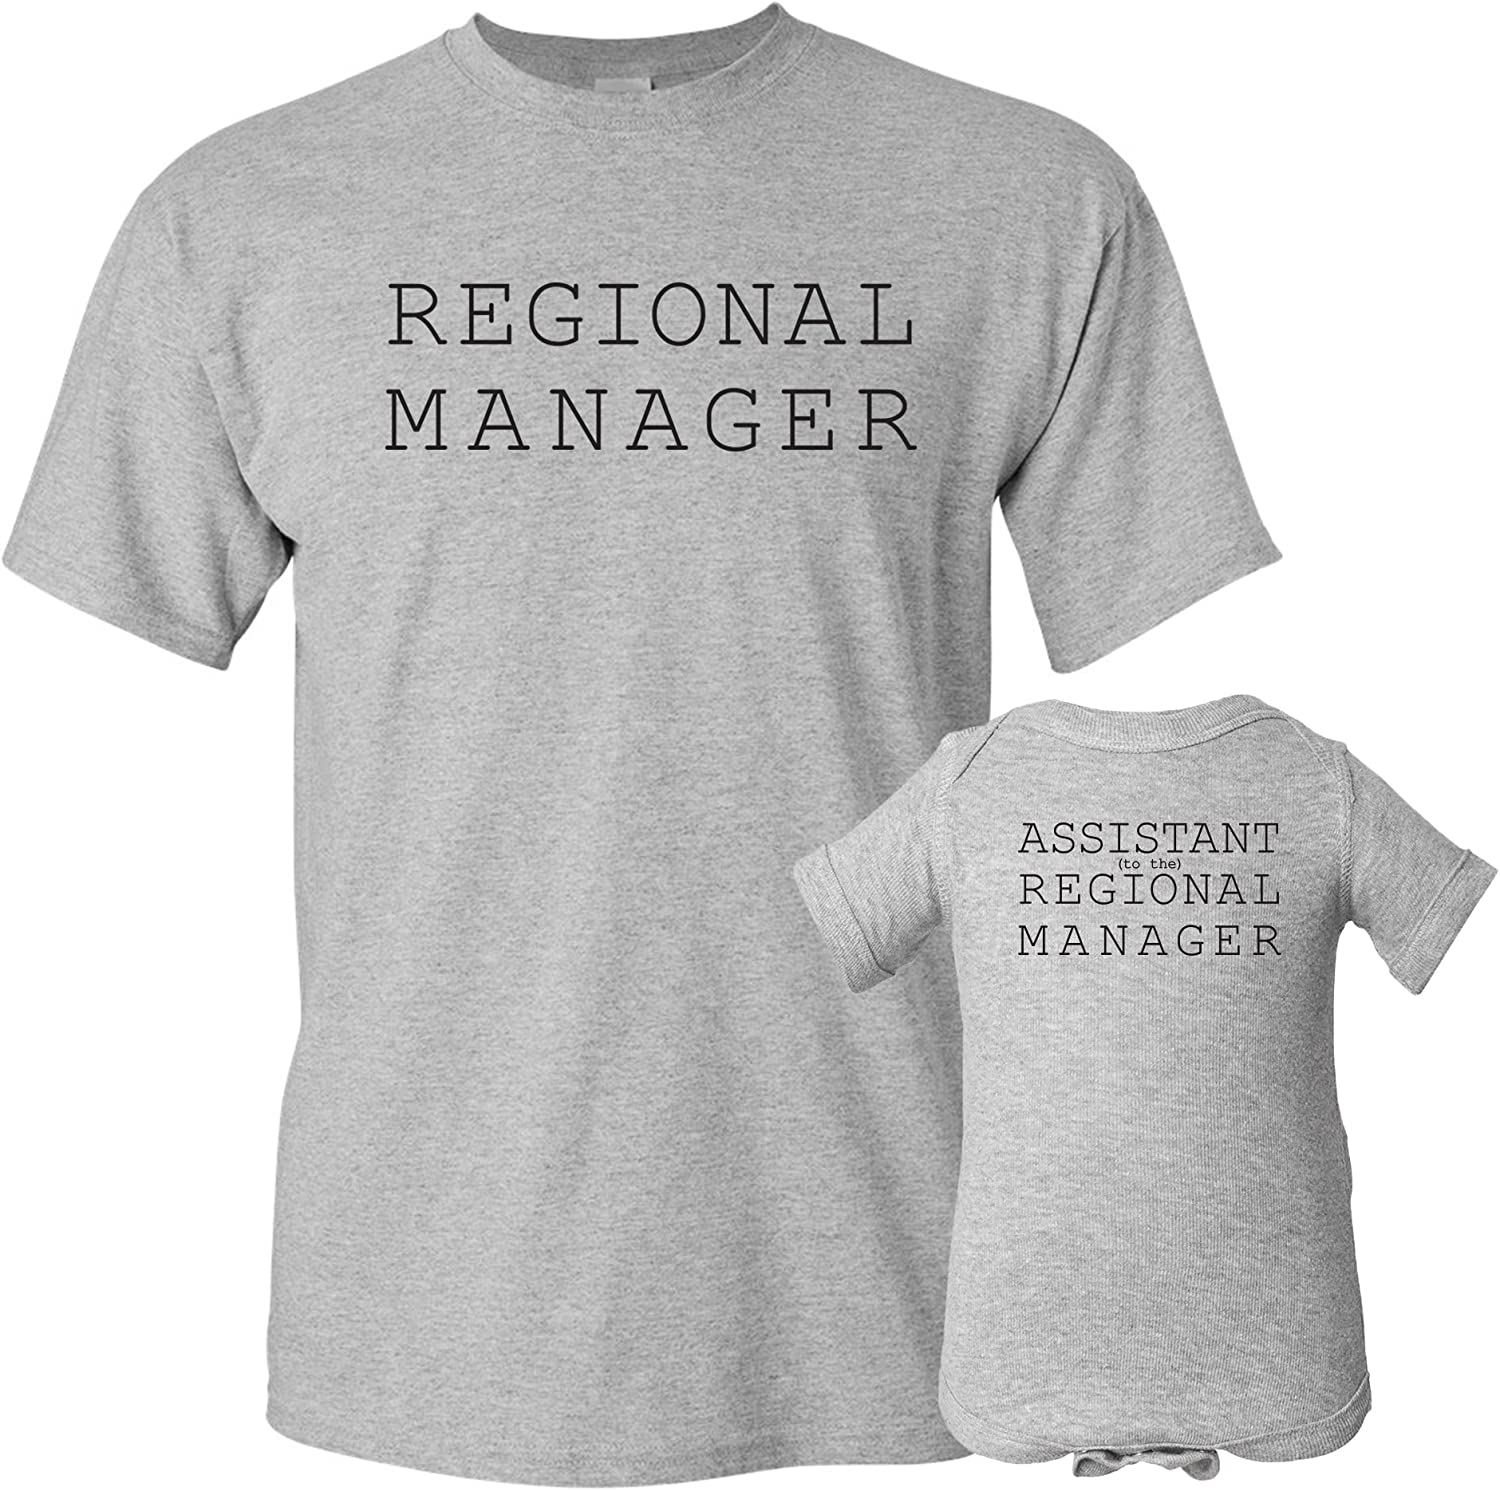 UGP Campus Apparel Regional Manager - Funny Joke Adult T Shirt & Infant Creeper Bundle